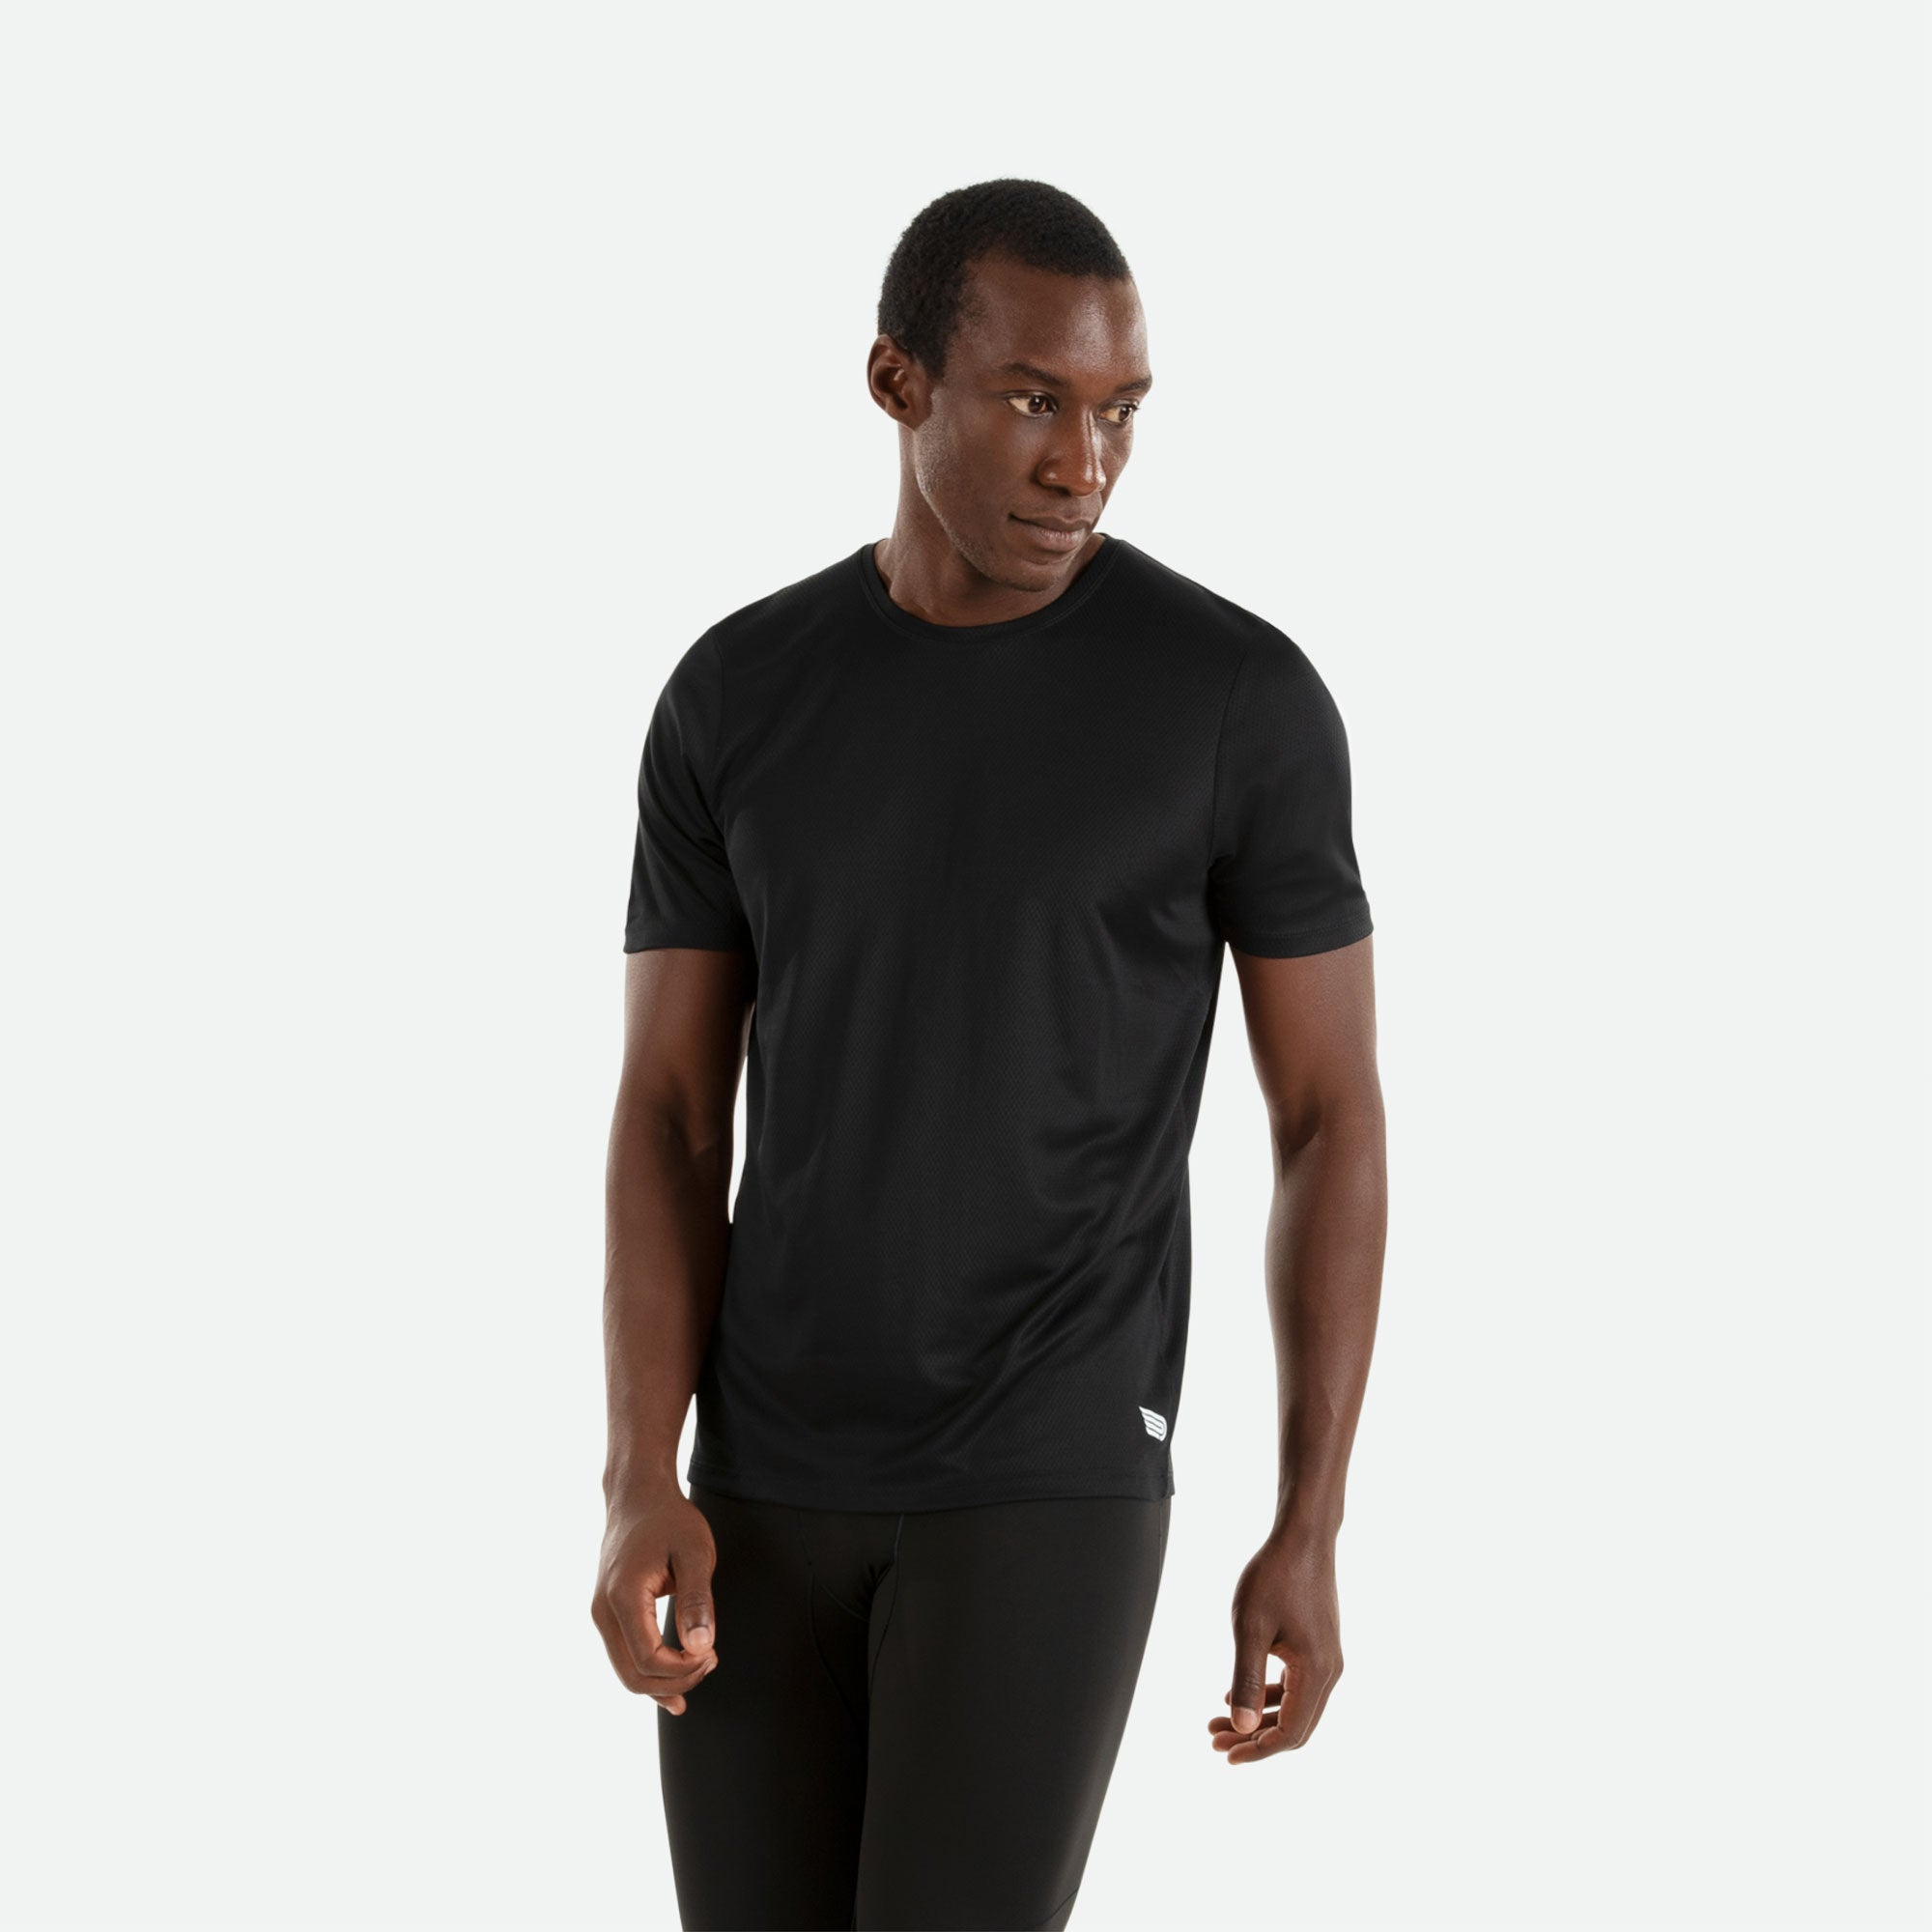 Our Pressio men's black Hāpai short sleeve t-shirt features EcoTECH MF fabric which has dual filament recycled polyester yarns from Unifi for superior moisture control to keep you dry.